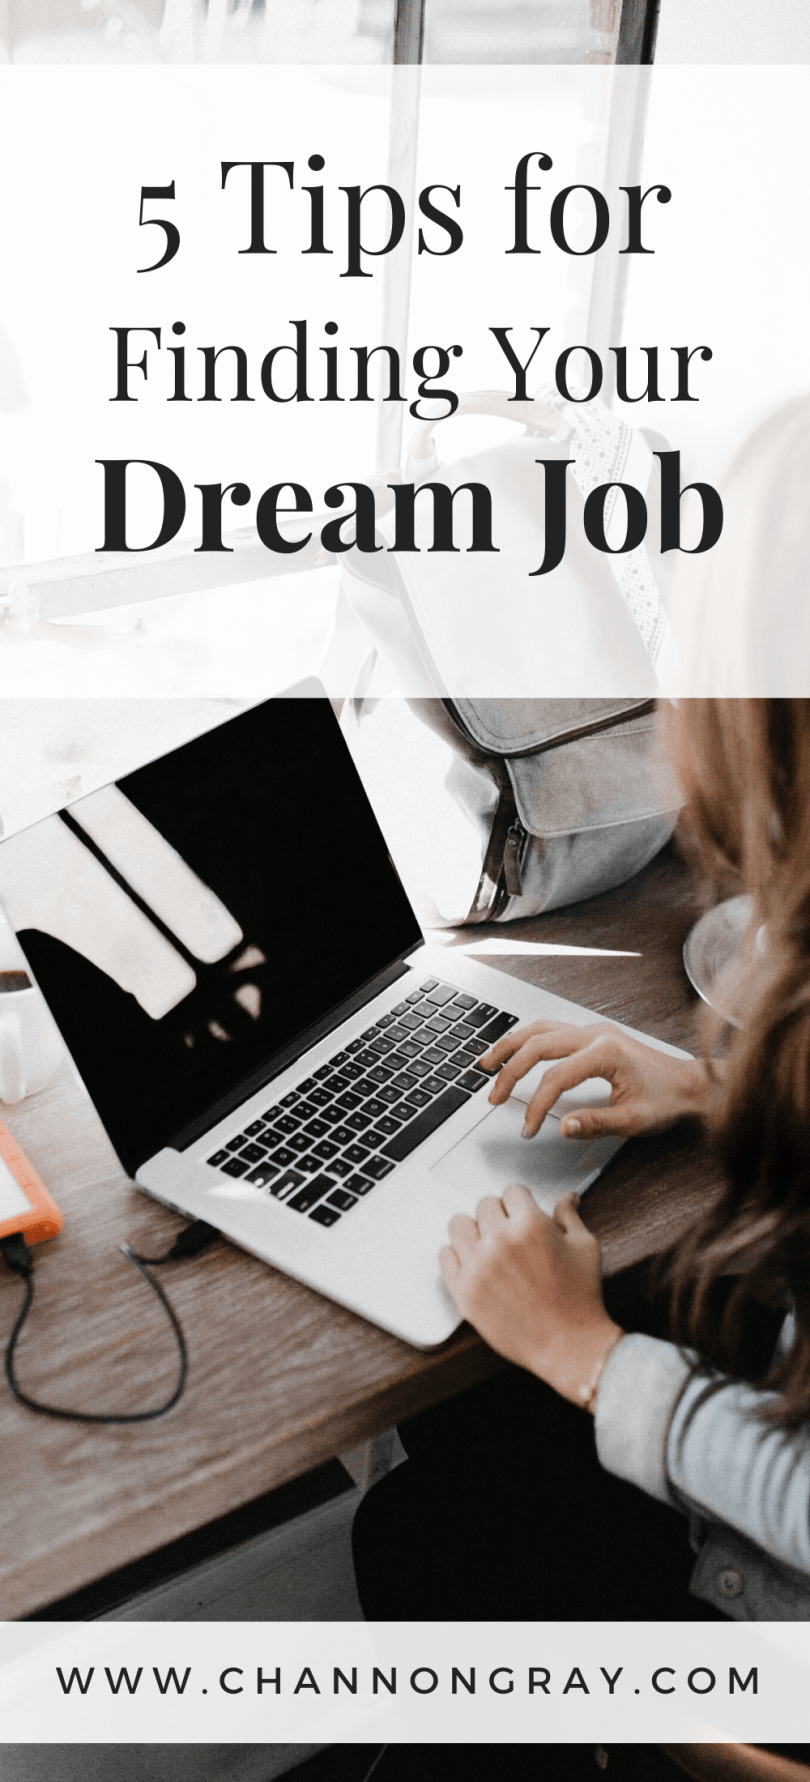 I have recently just landed my dream job in teaching and I am beyond excited to start in November. However, the road has not been smooth and over the past few years, I have explored many different career options before landing (happily) here. Here are some tips to help you locate your dream job, just like me! - www.channongray.com // heythereChannon #career #business #dreamjob